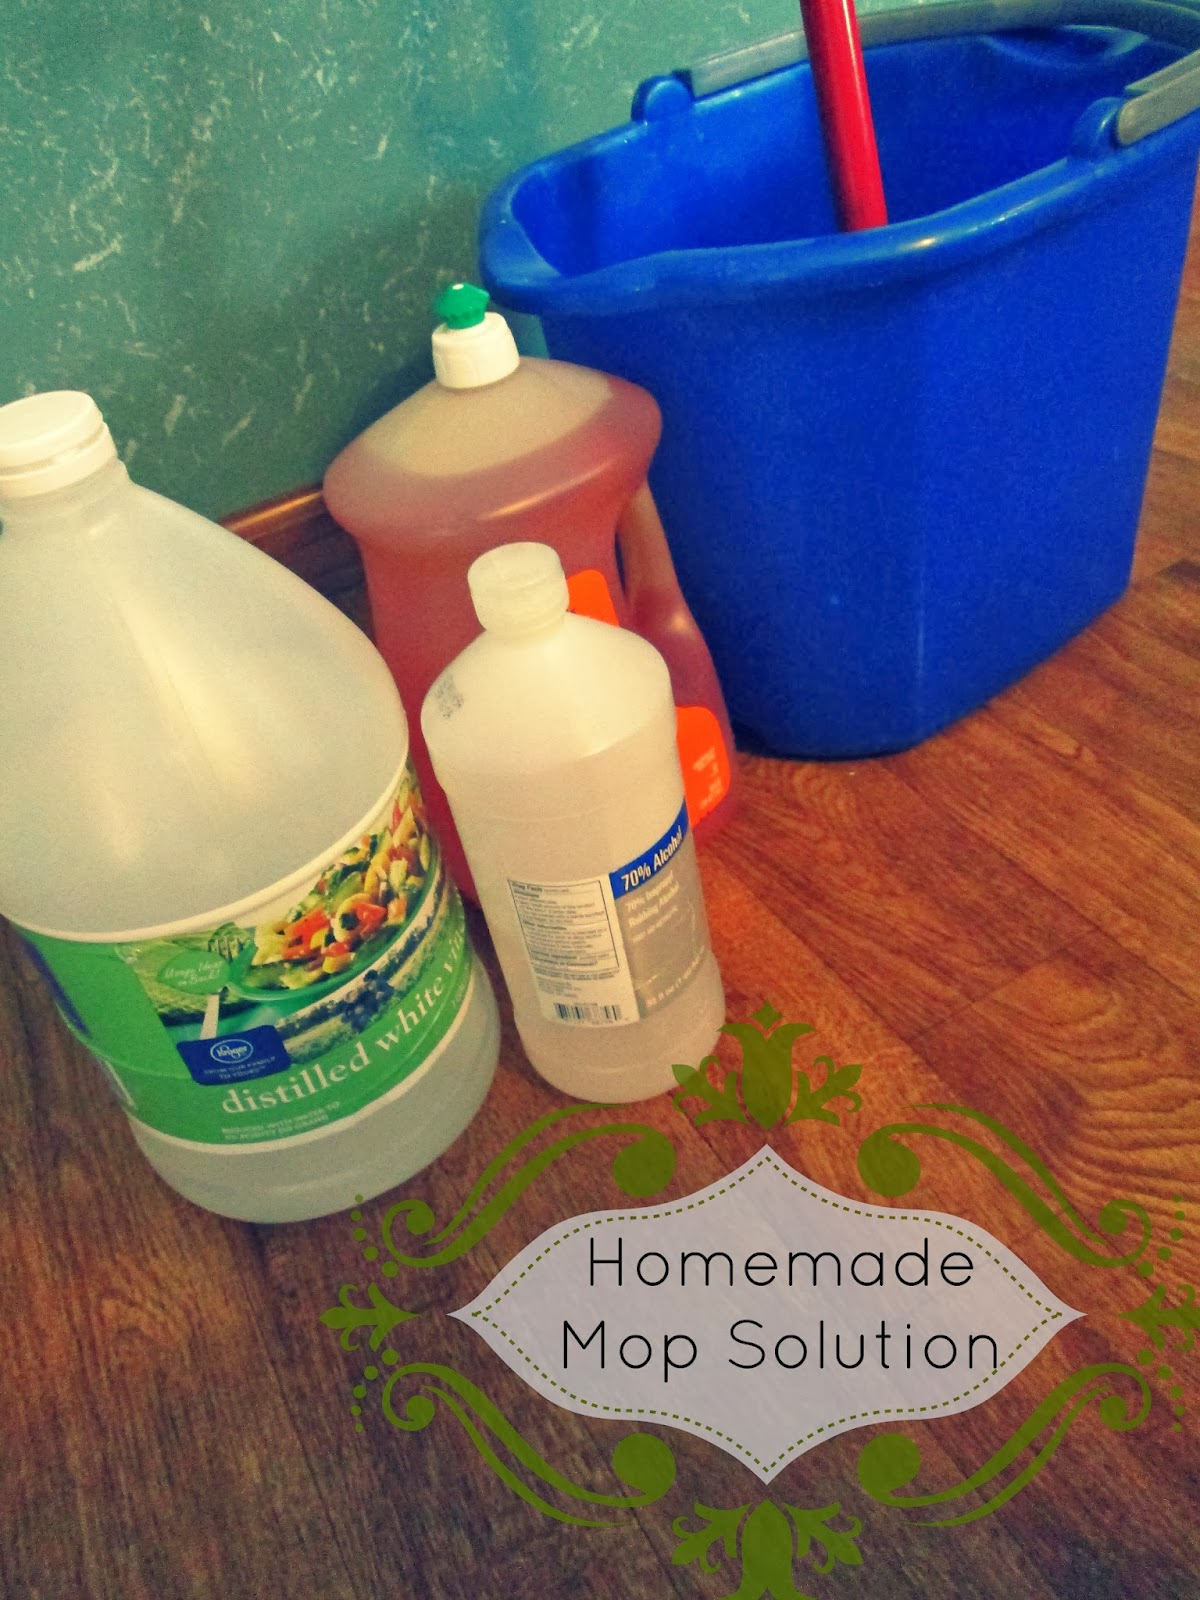 The Rehomesteaders Homemade Mop Solution